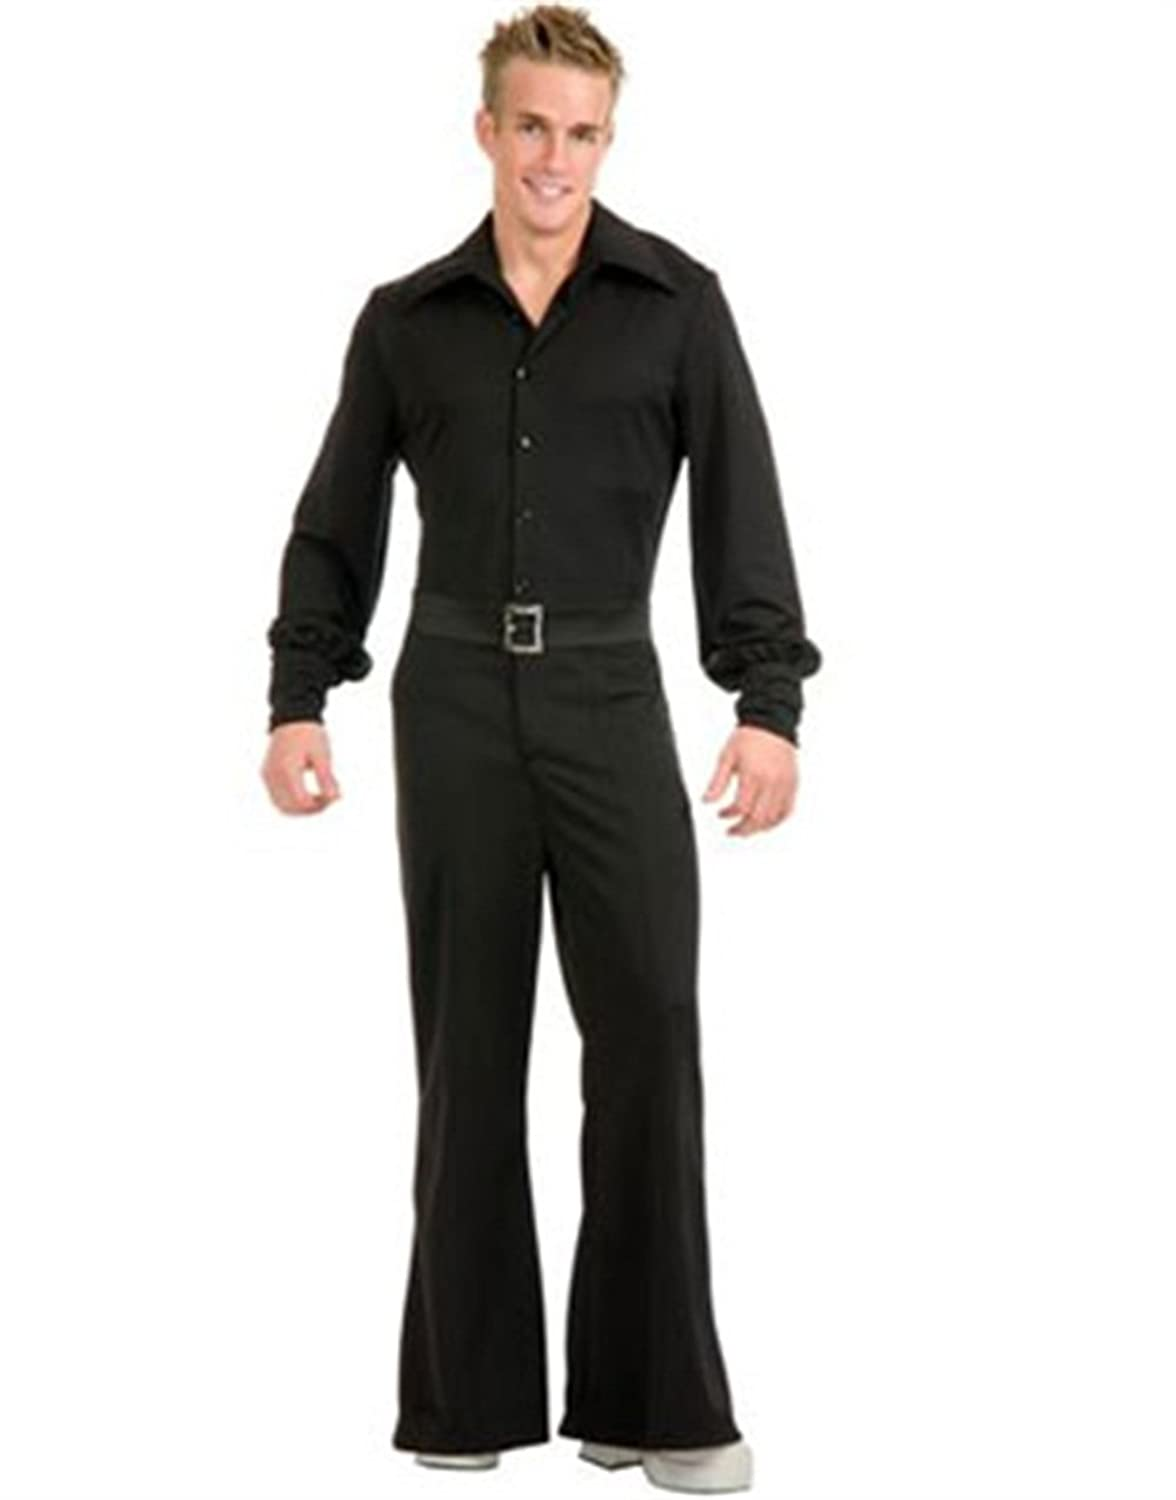 60s -70s  Men's Costumes : Hippie, Disco, Beatles Studio Jumpsuit Costume $72.99 AT vintagedancer.com